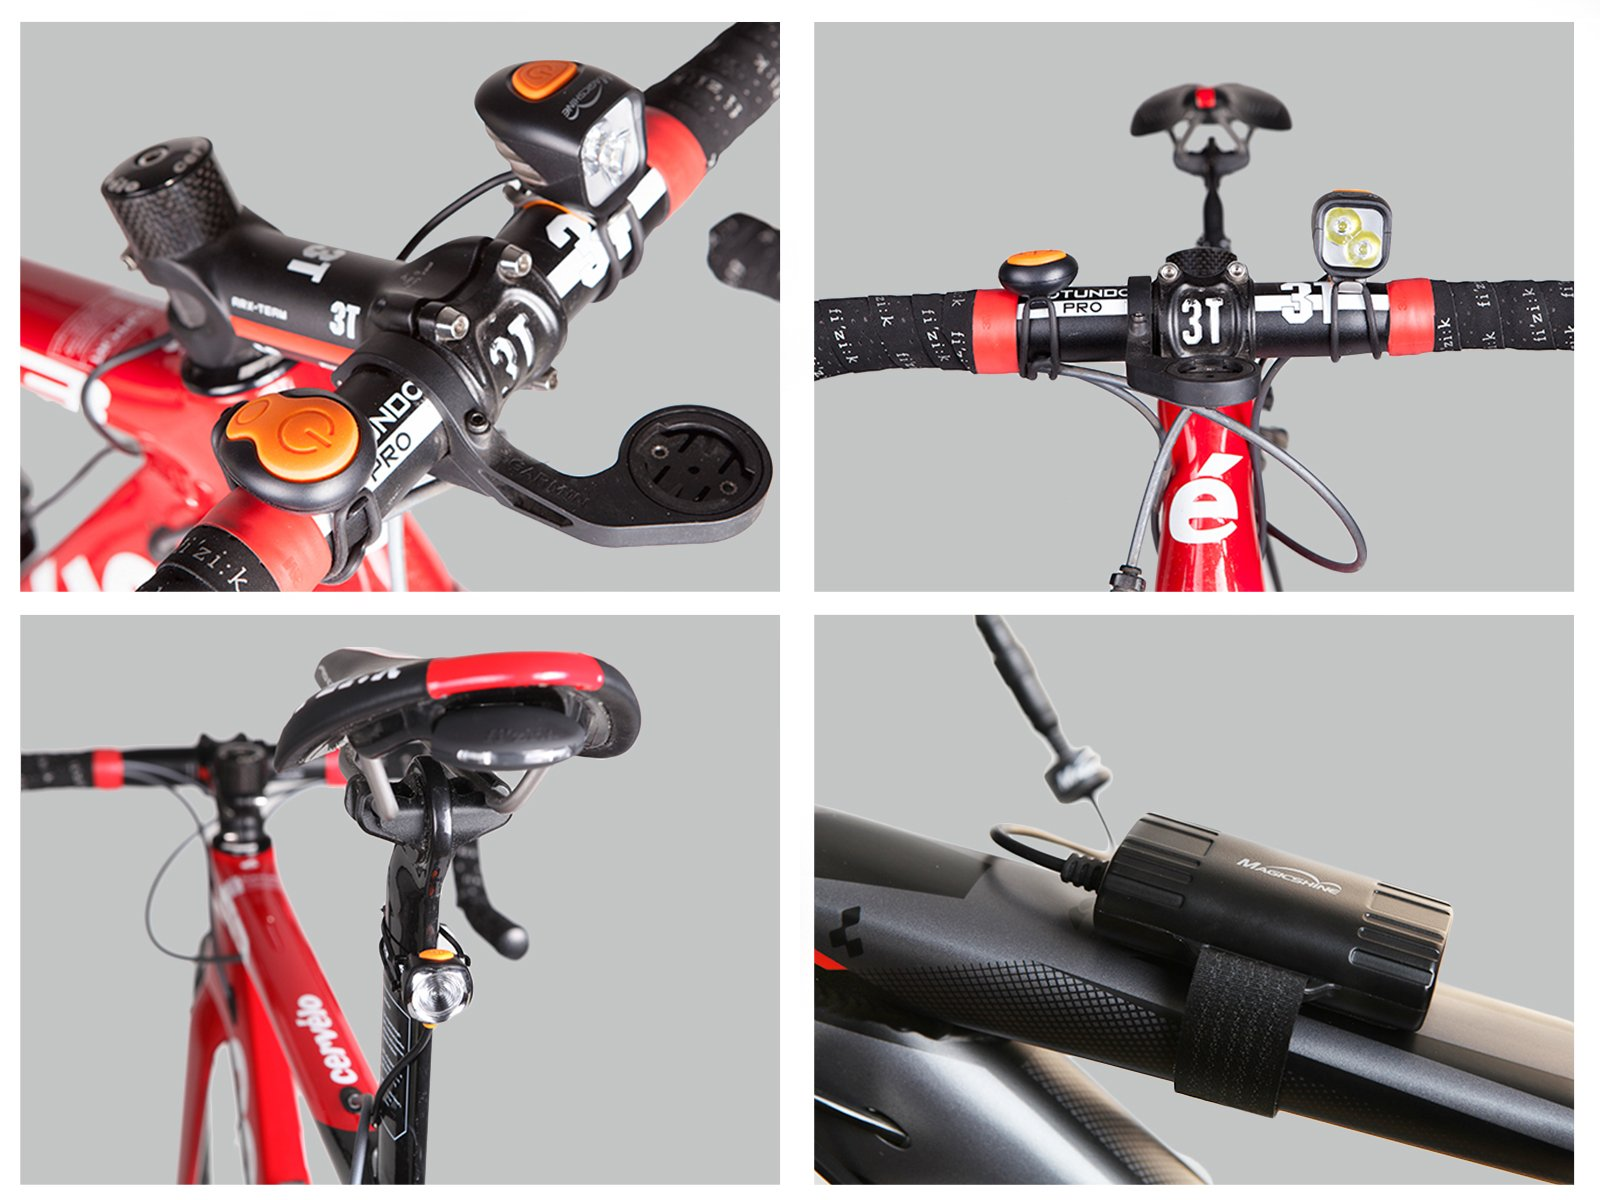 Magicshine MJ 902, 1600 Lumens Bike Light Set, Wireless Remote Bicycle Lights Front And Rear Combo, Rechargeable 2 CREE XM-L2 LED Bike Tail Light, Portable & Convenient Bright Bike Light by Magicshine (Image #4)